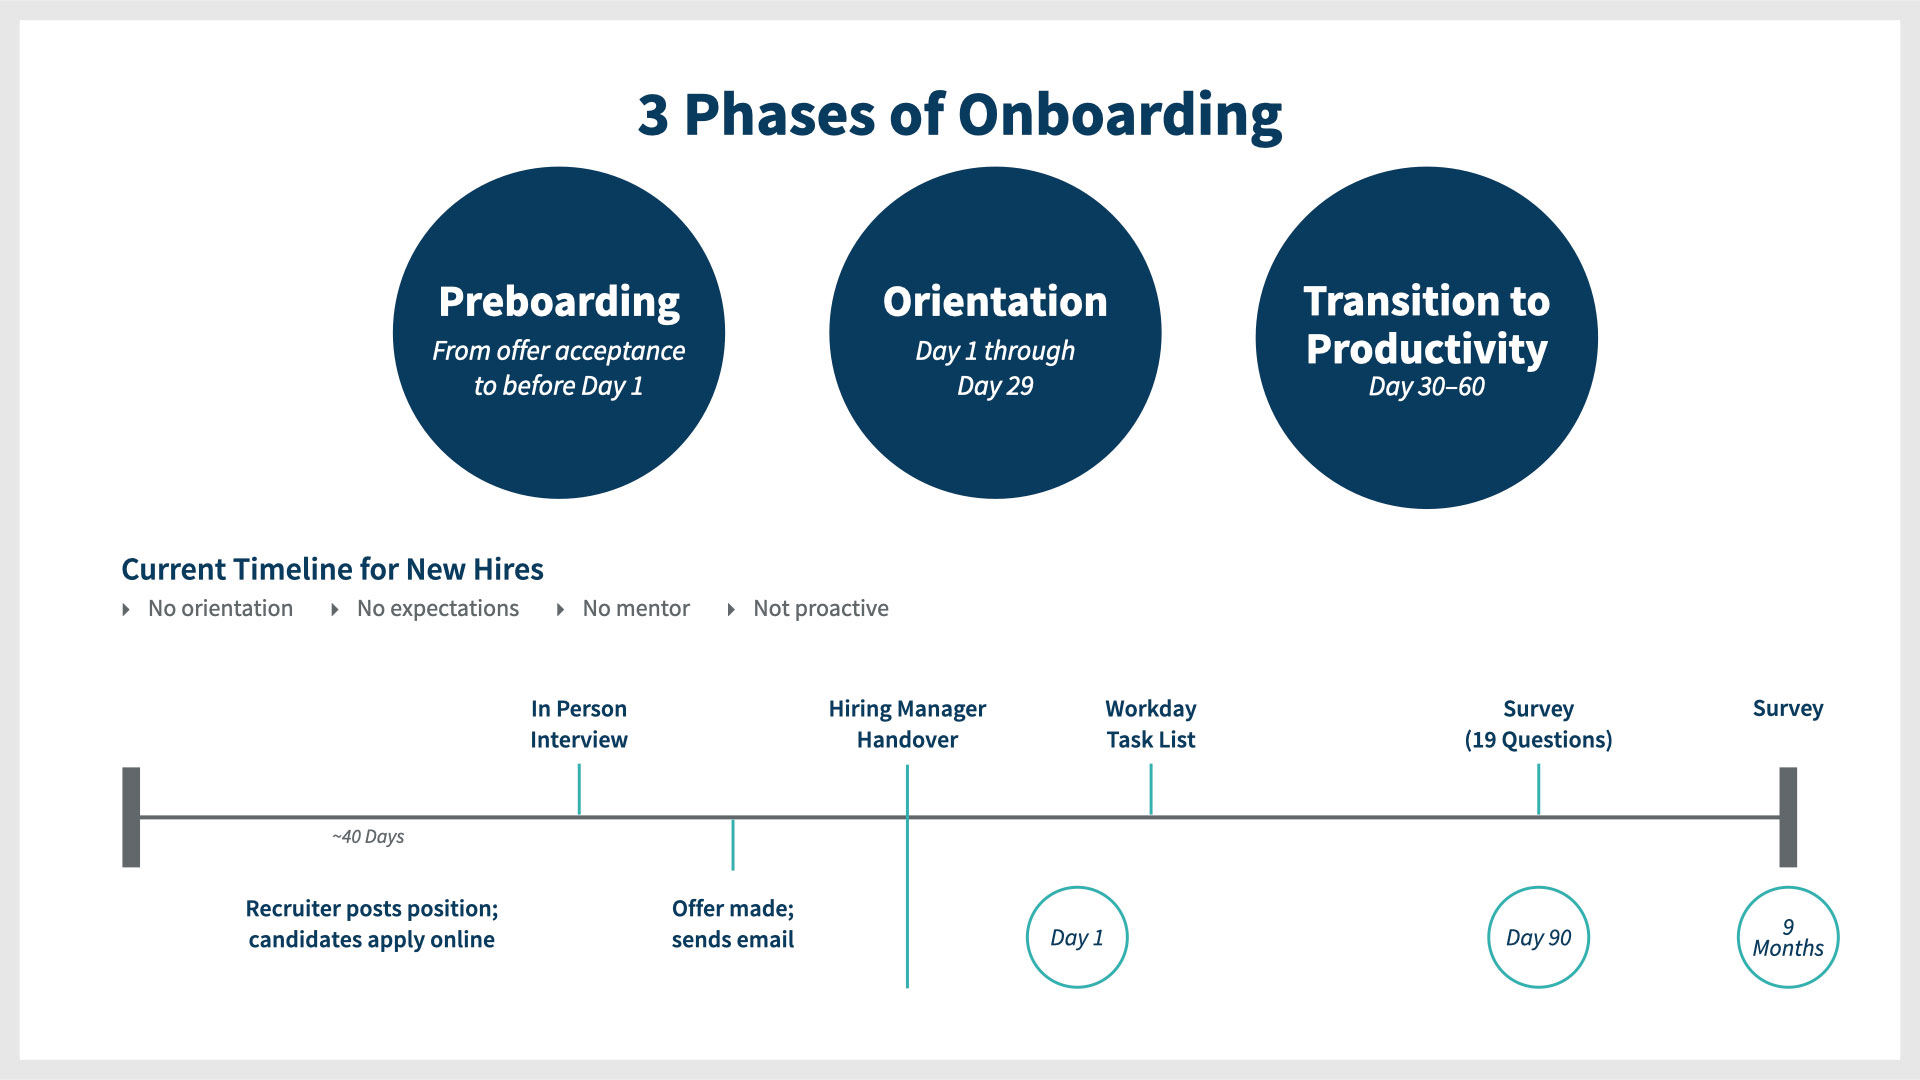 3 Phases of Onboarding Timeline